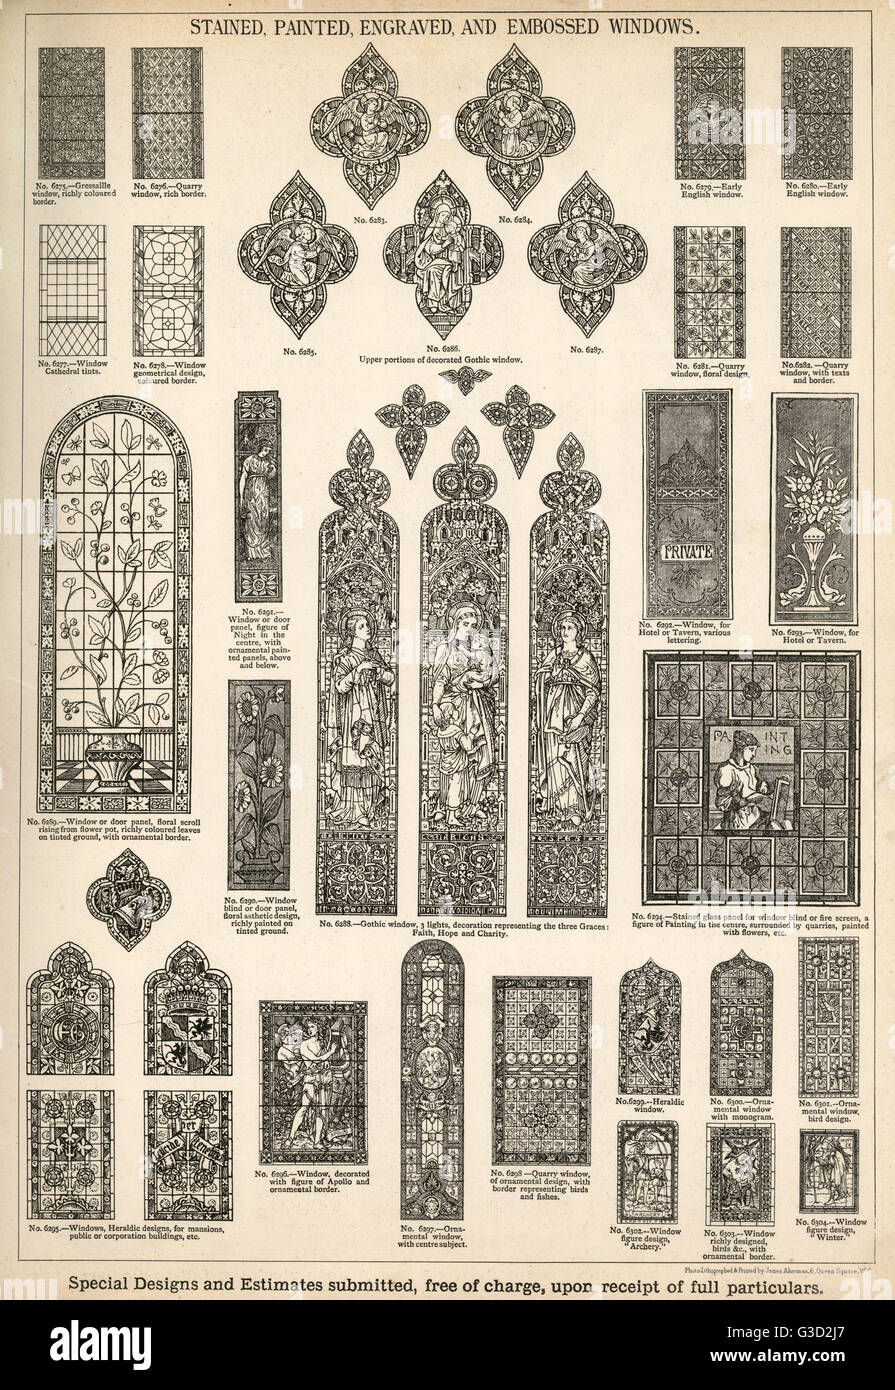 Stained, Painted, Engraved and Embossed Windows, Plate 164, showing a range of windows for churches, homes and other - Stock Image